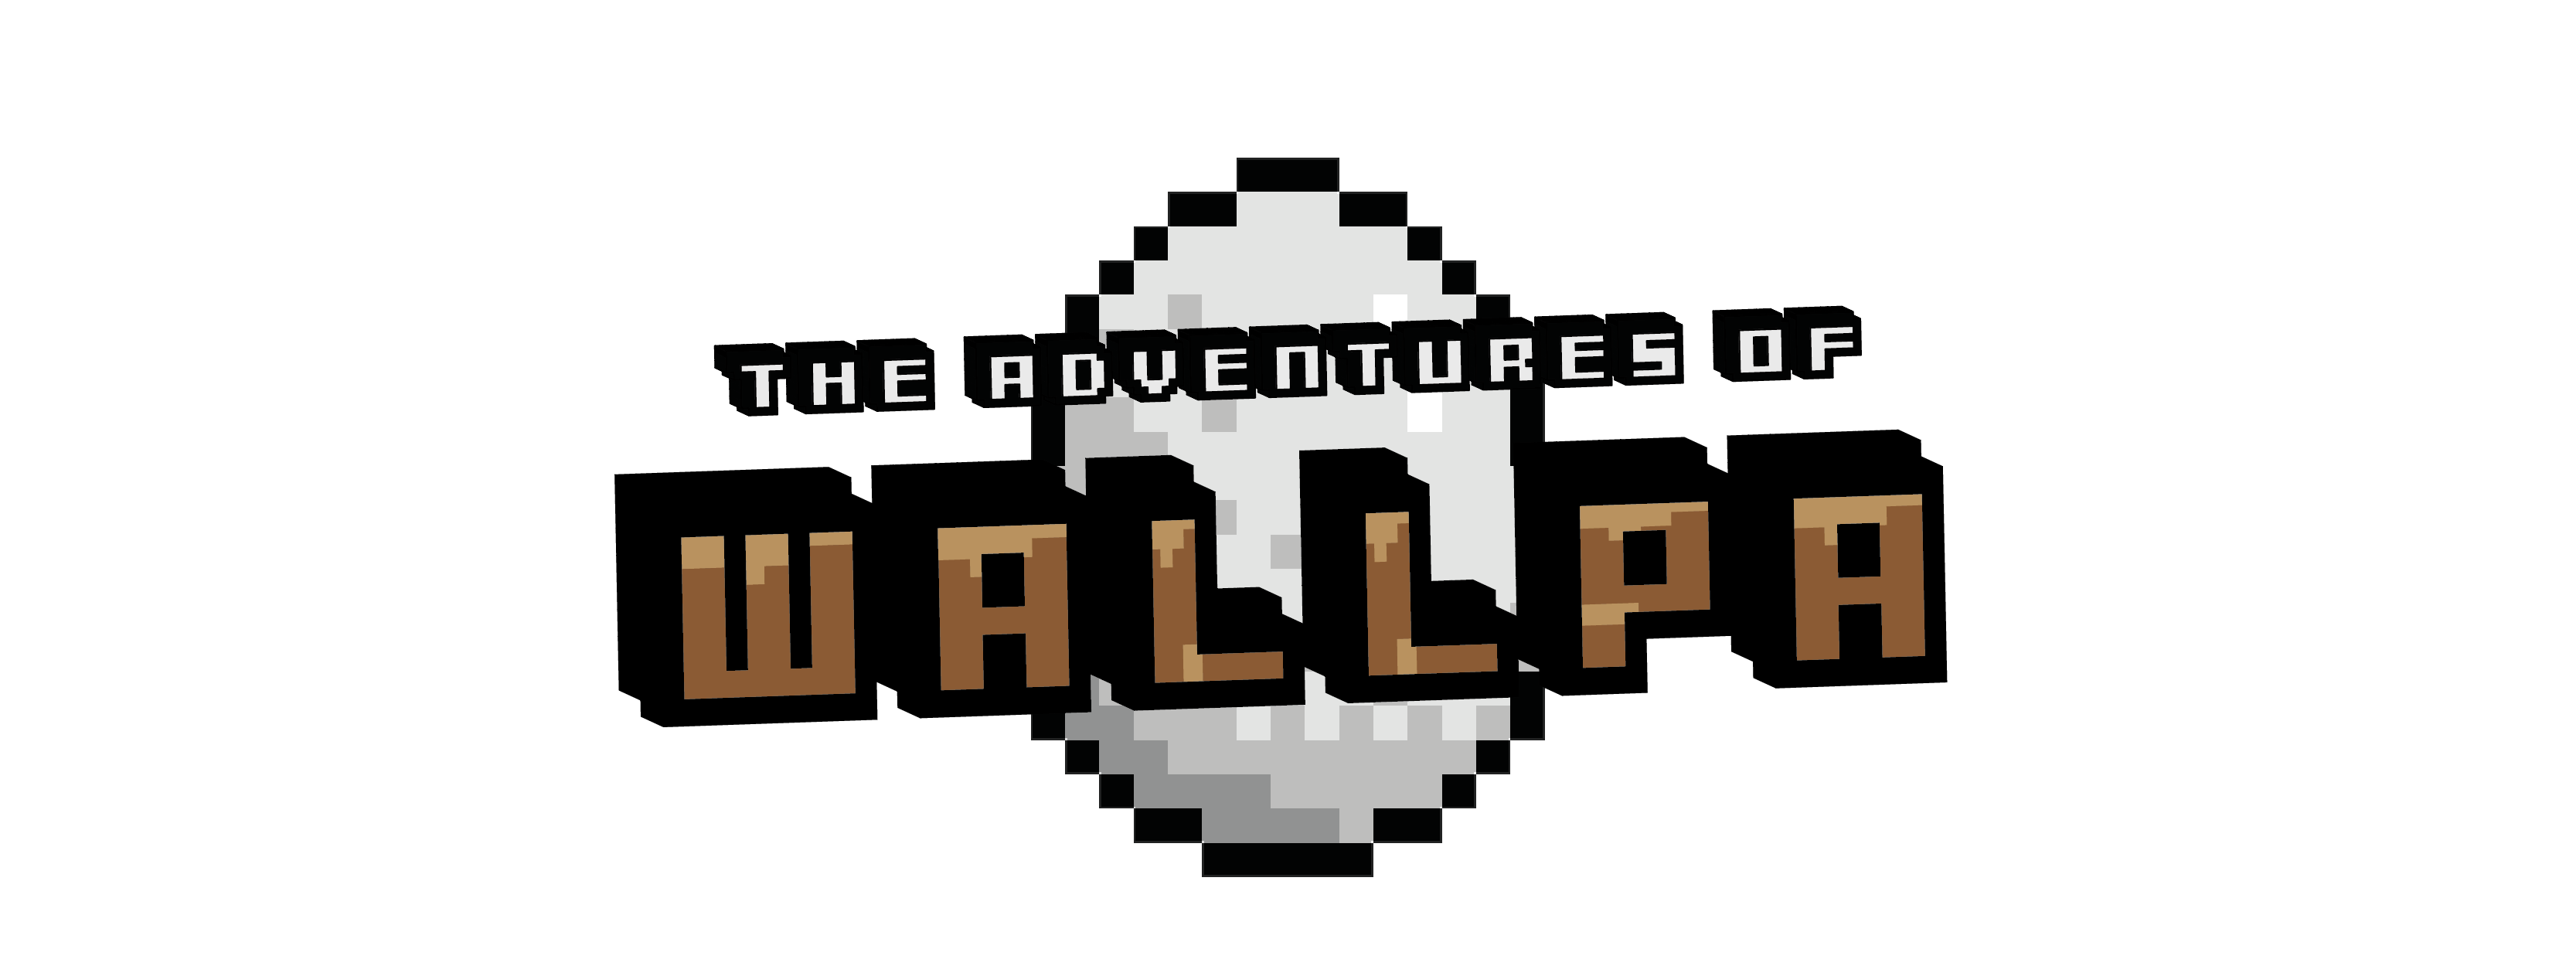 The Adventures of Wallpa